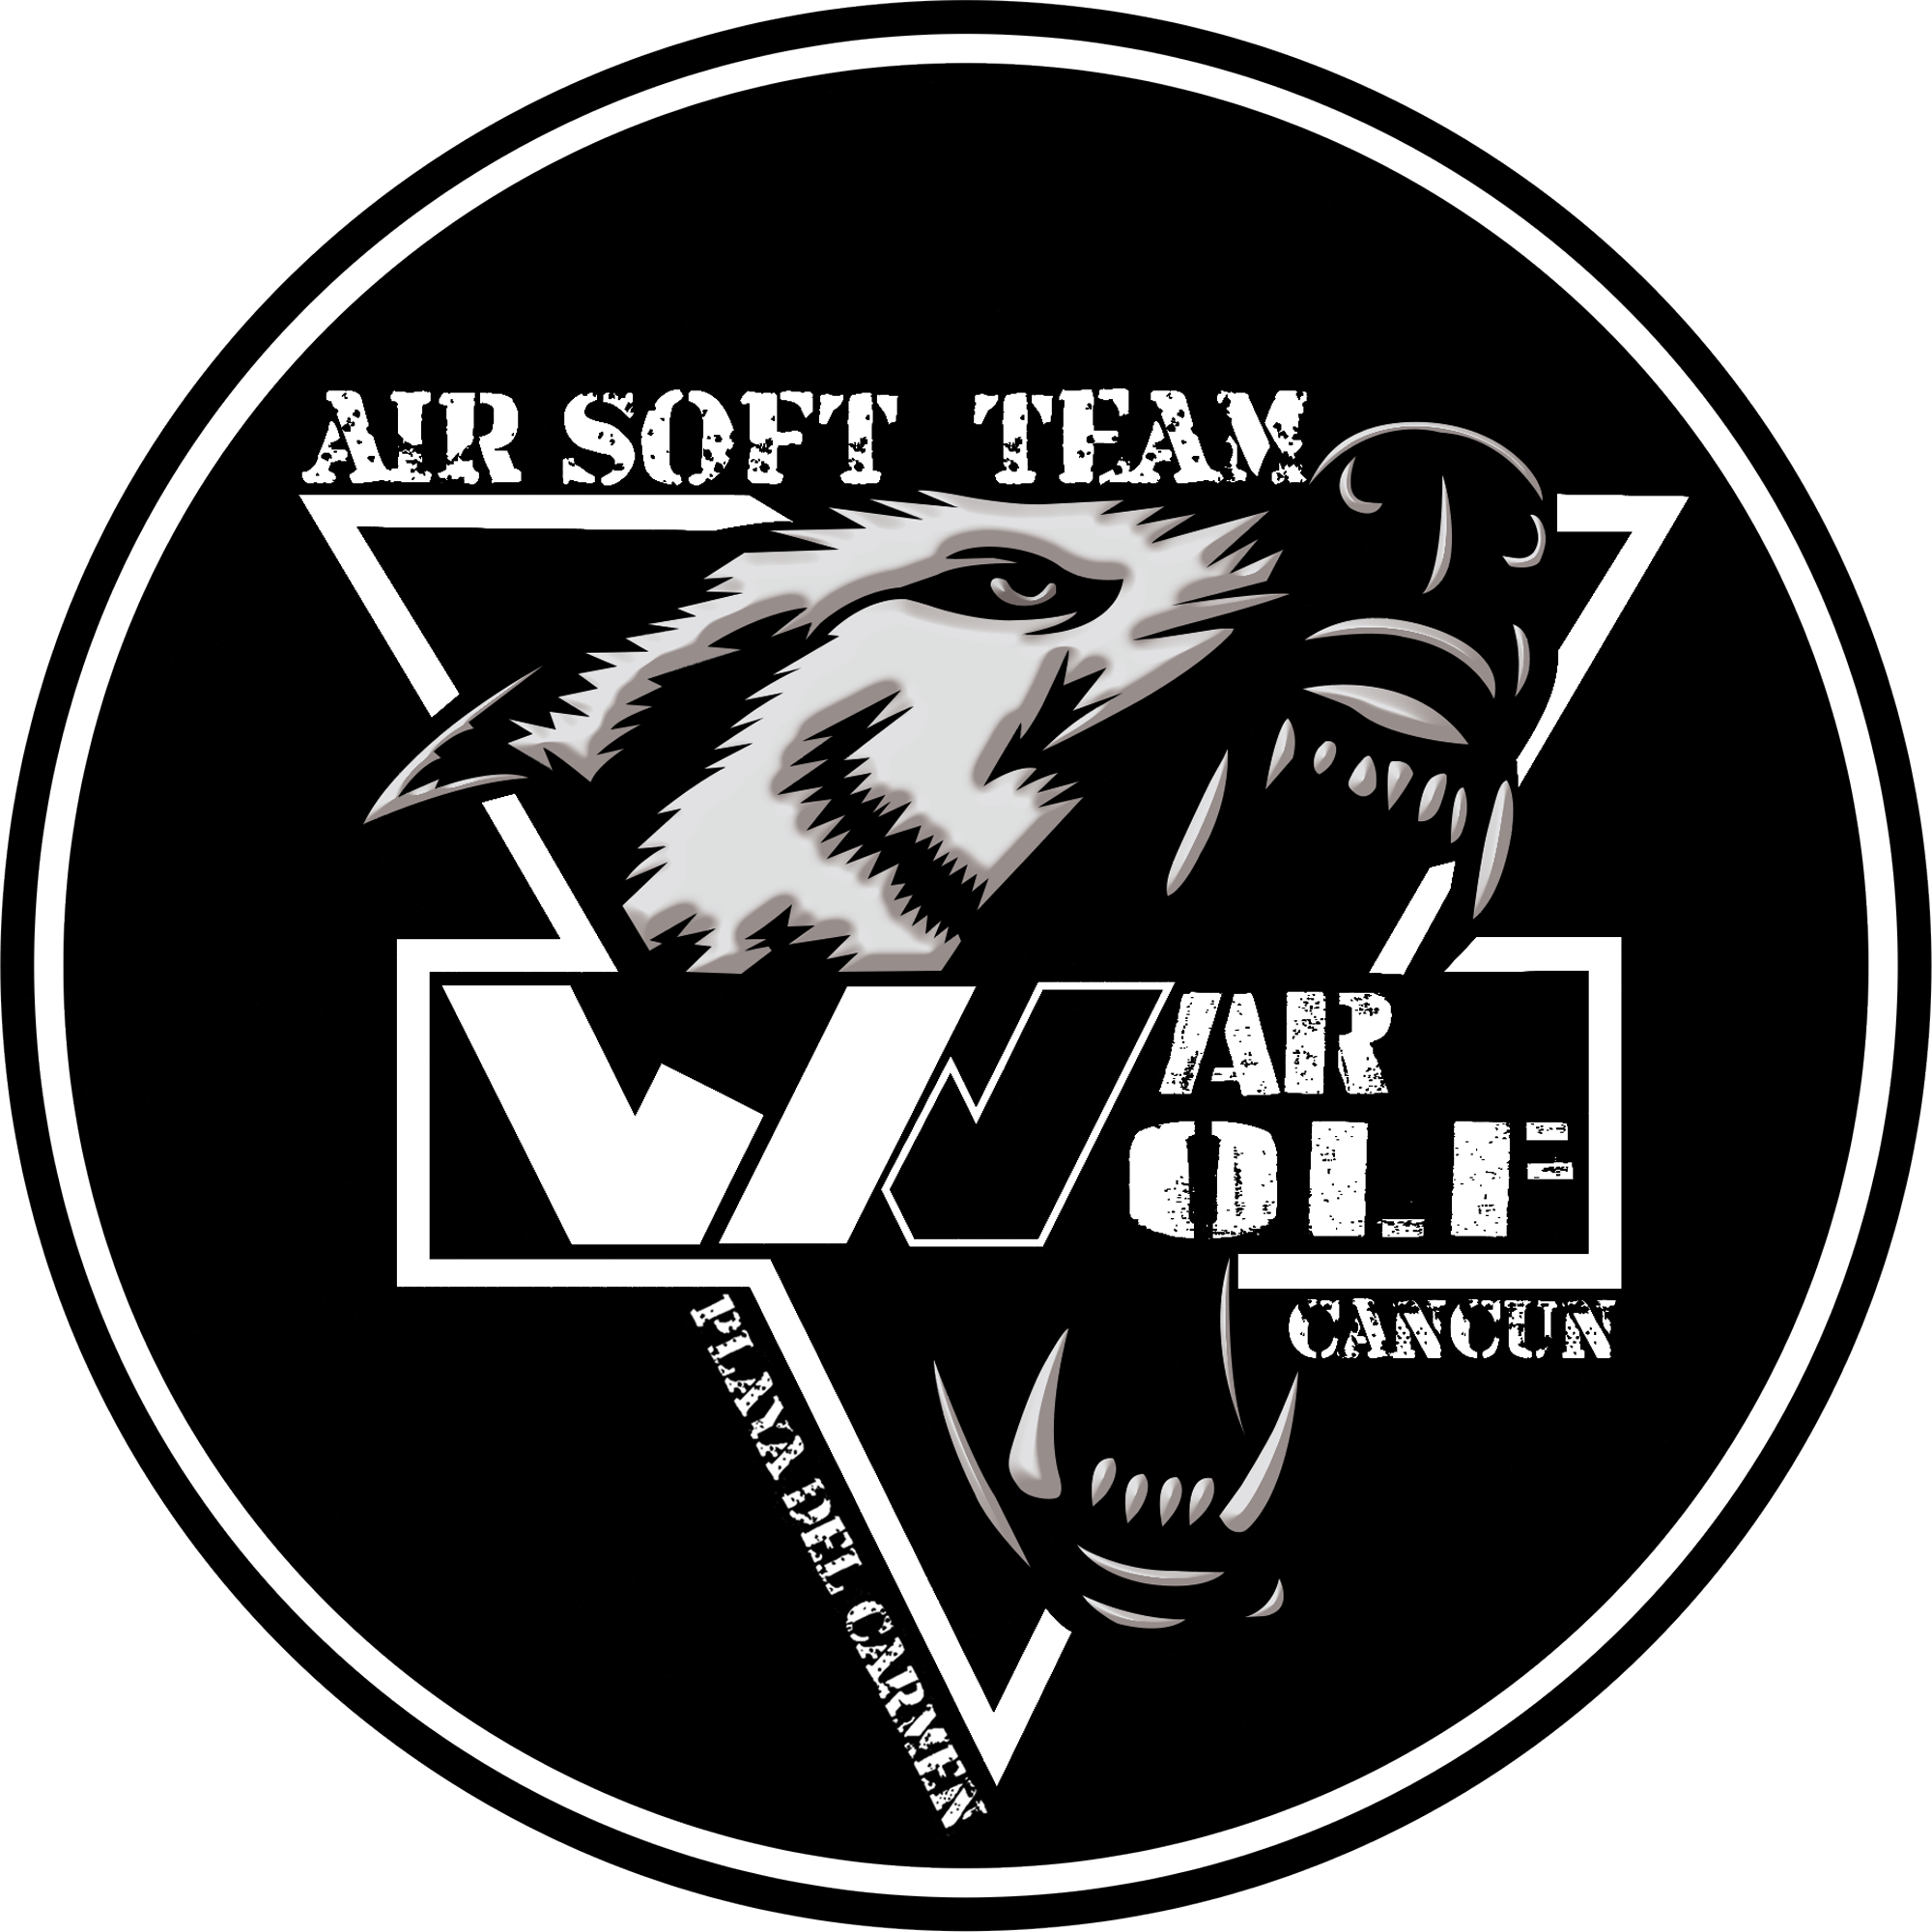 WarWolf Airsoft Team Playa del Carmen Cancun  cover profesional de  en Cancún